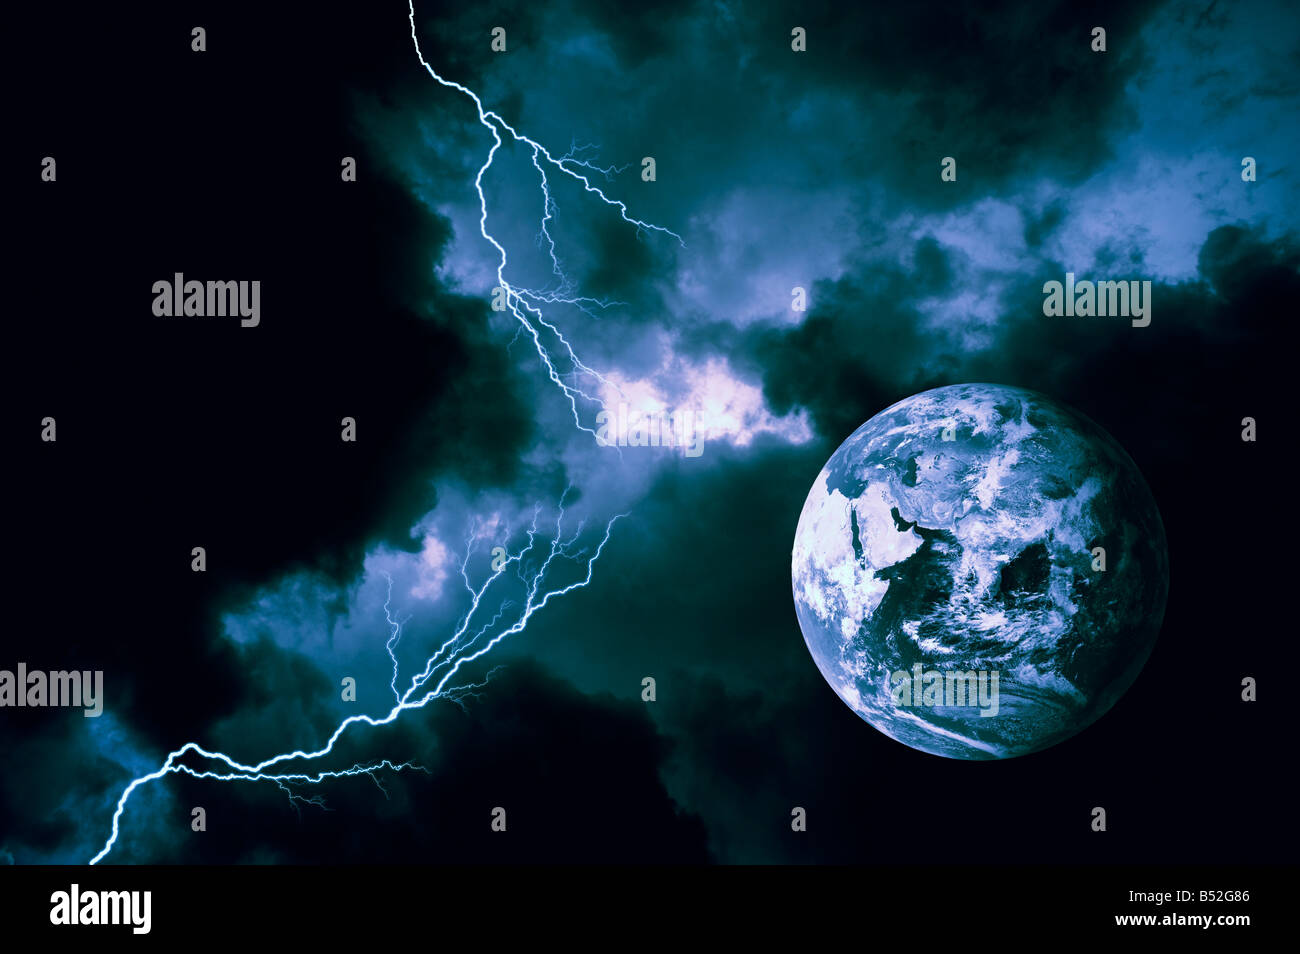 conceptual view of the earth during a computer generated lightning storm - Stock Image